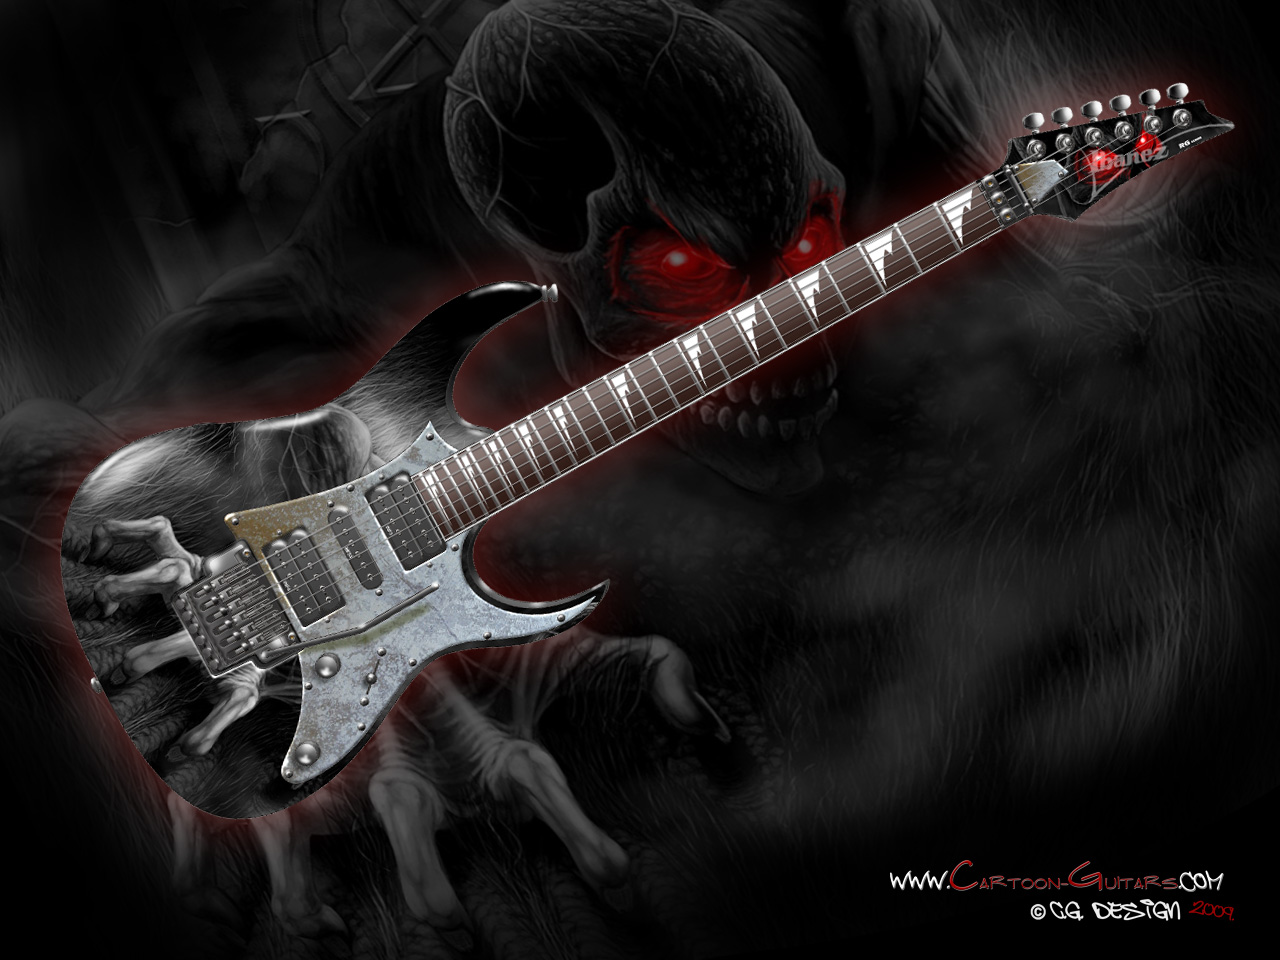 Free Download Acdc Hd Images Acdc Wallpapers 1280x960 For Your Desktop Mobile Tablet Explore 50 Rock Star Wallpaper 10 The Rock Wallpaper Rockstar Energy Drink Wallpaper Rockstar Logo Wallpaper